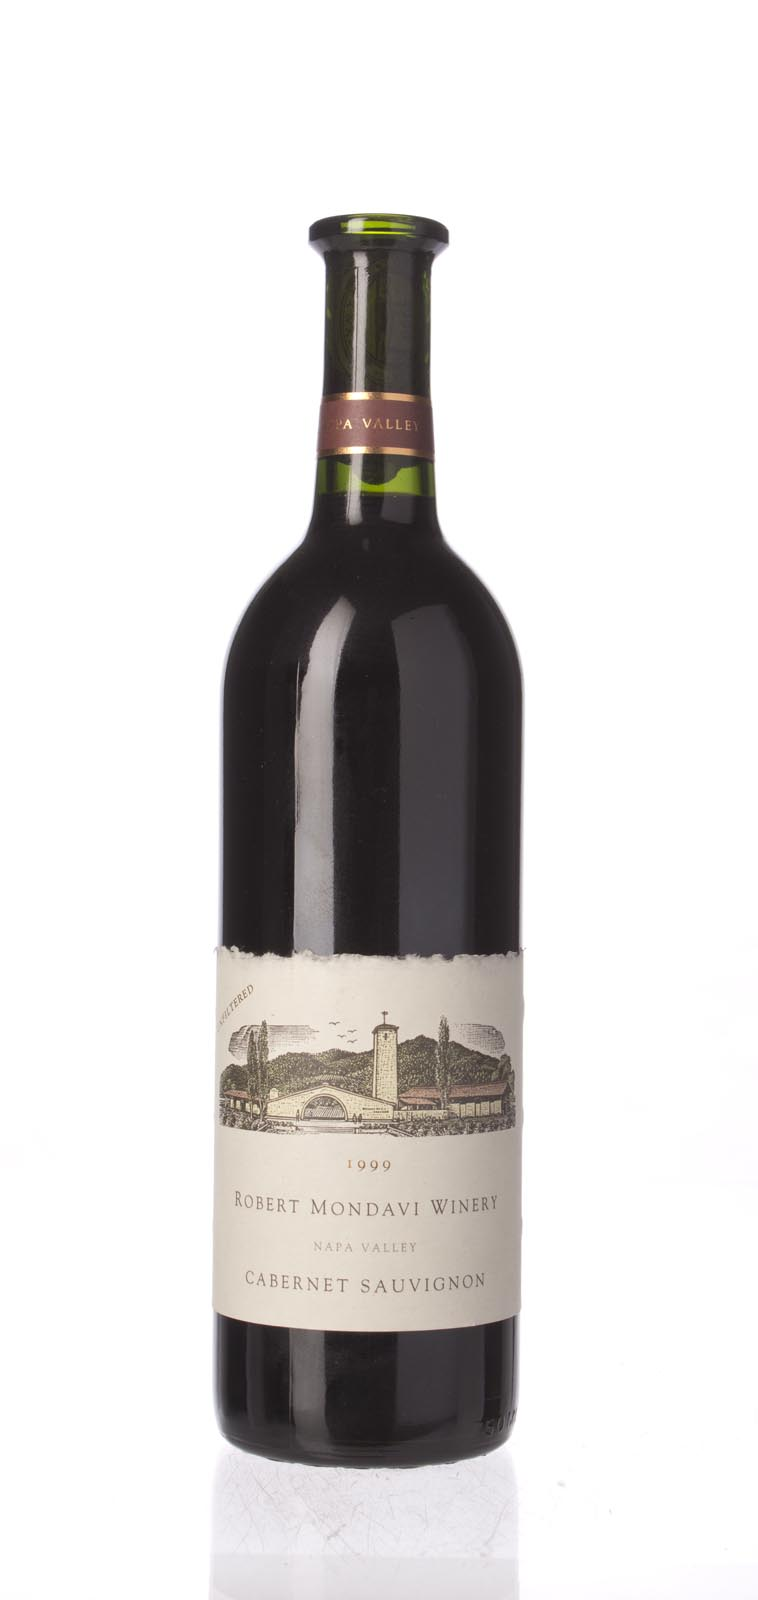 Robert Mondavi Cabernet Sauvignon Napa Valley 1999, 750mL () from The BPW - Merchants of rare and fine wines.